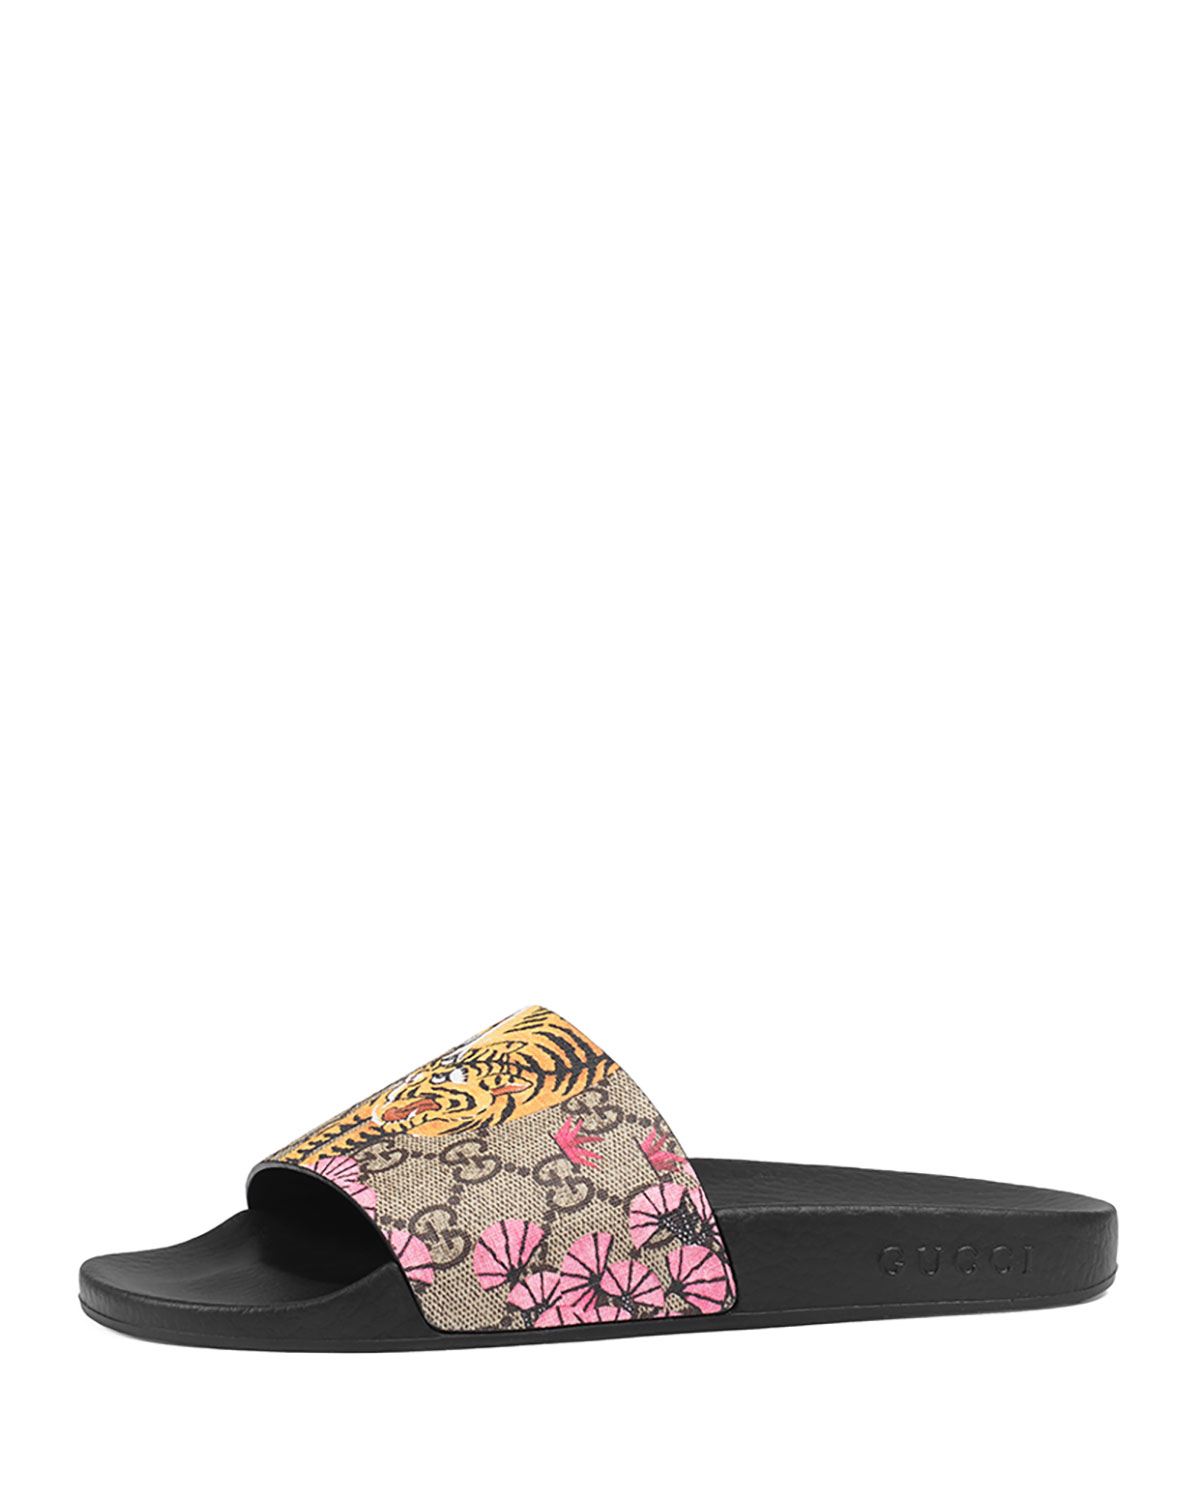 Pursuit Bengal,Print Canvas Sandal, Black